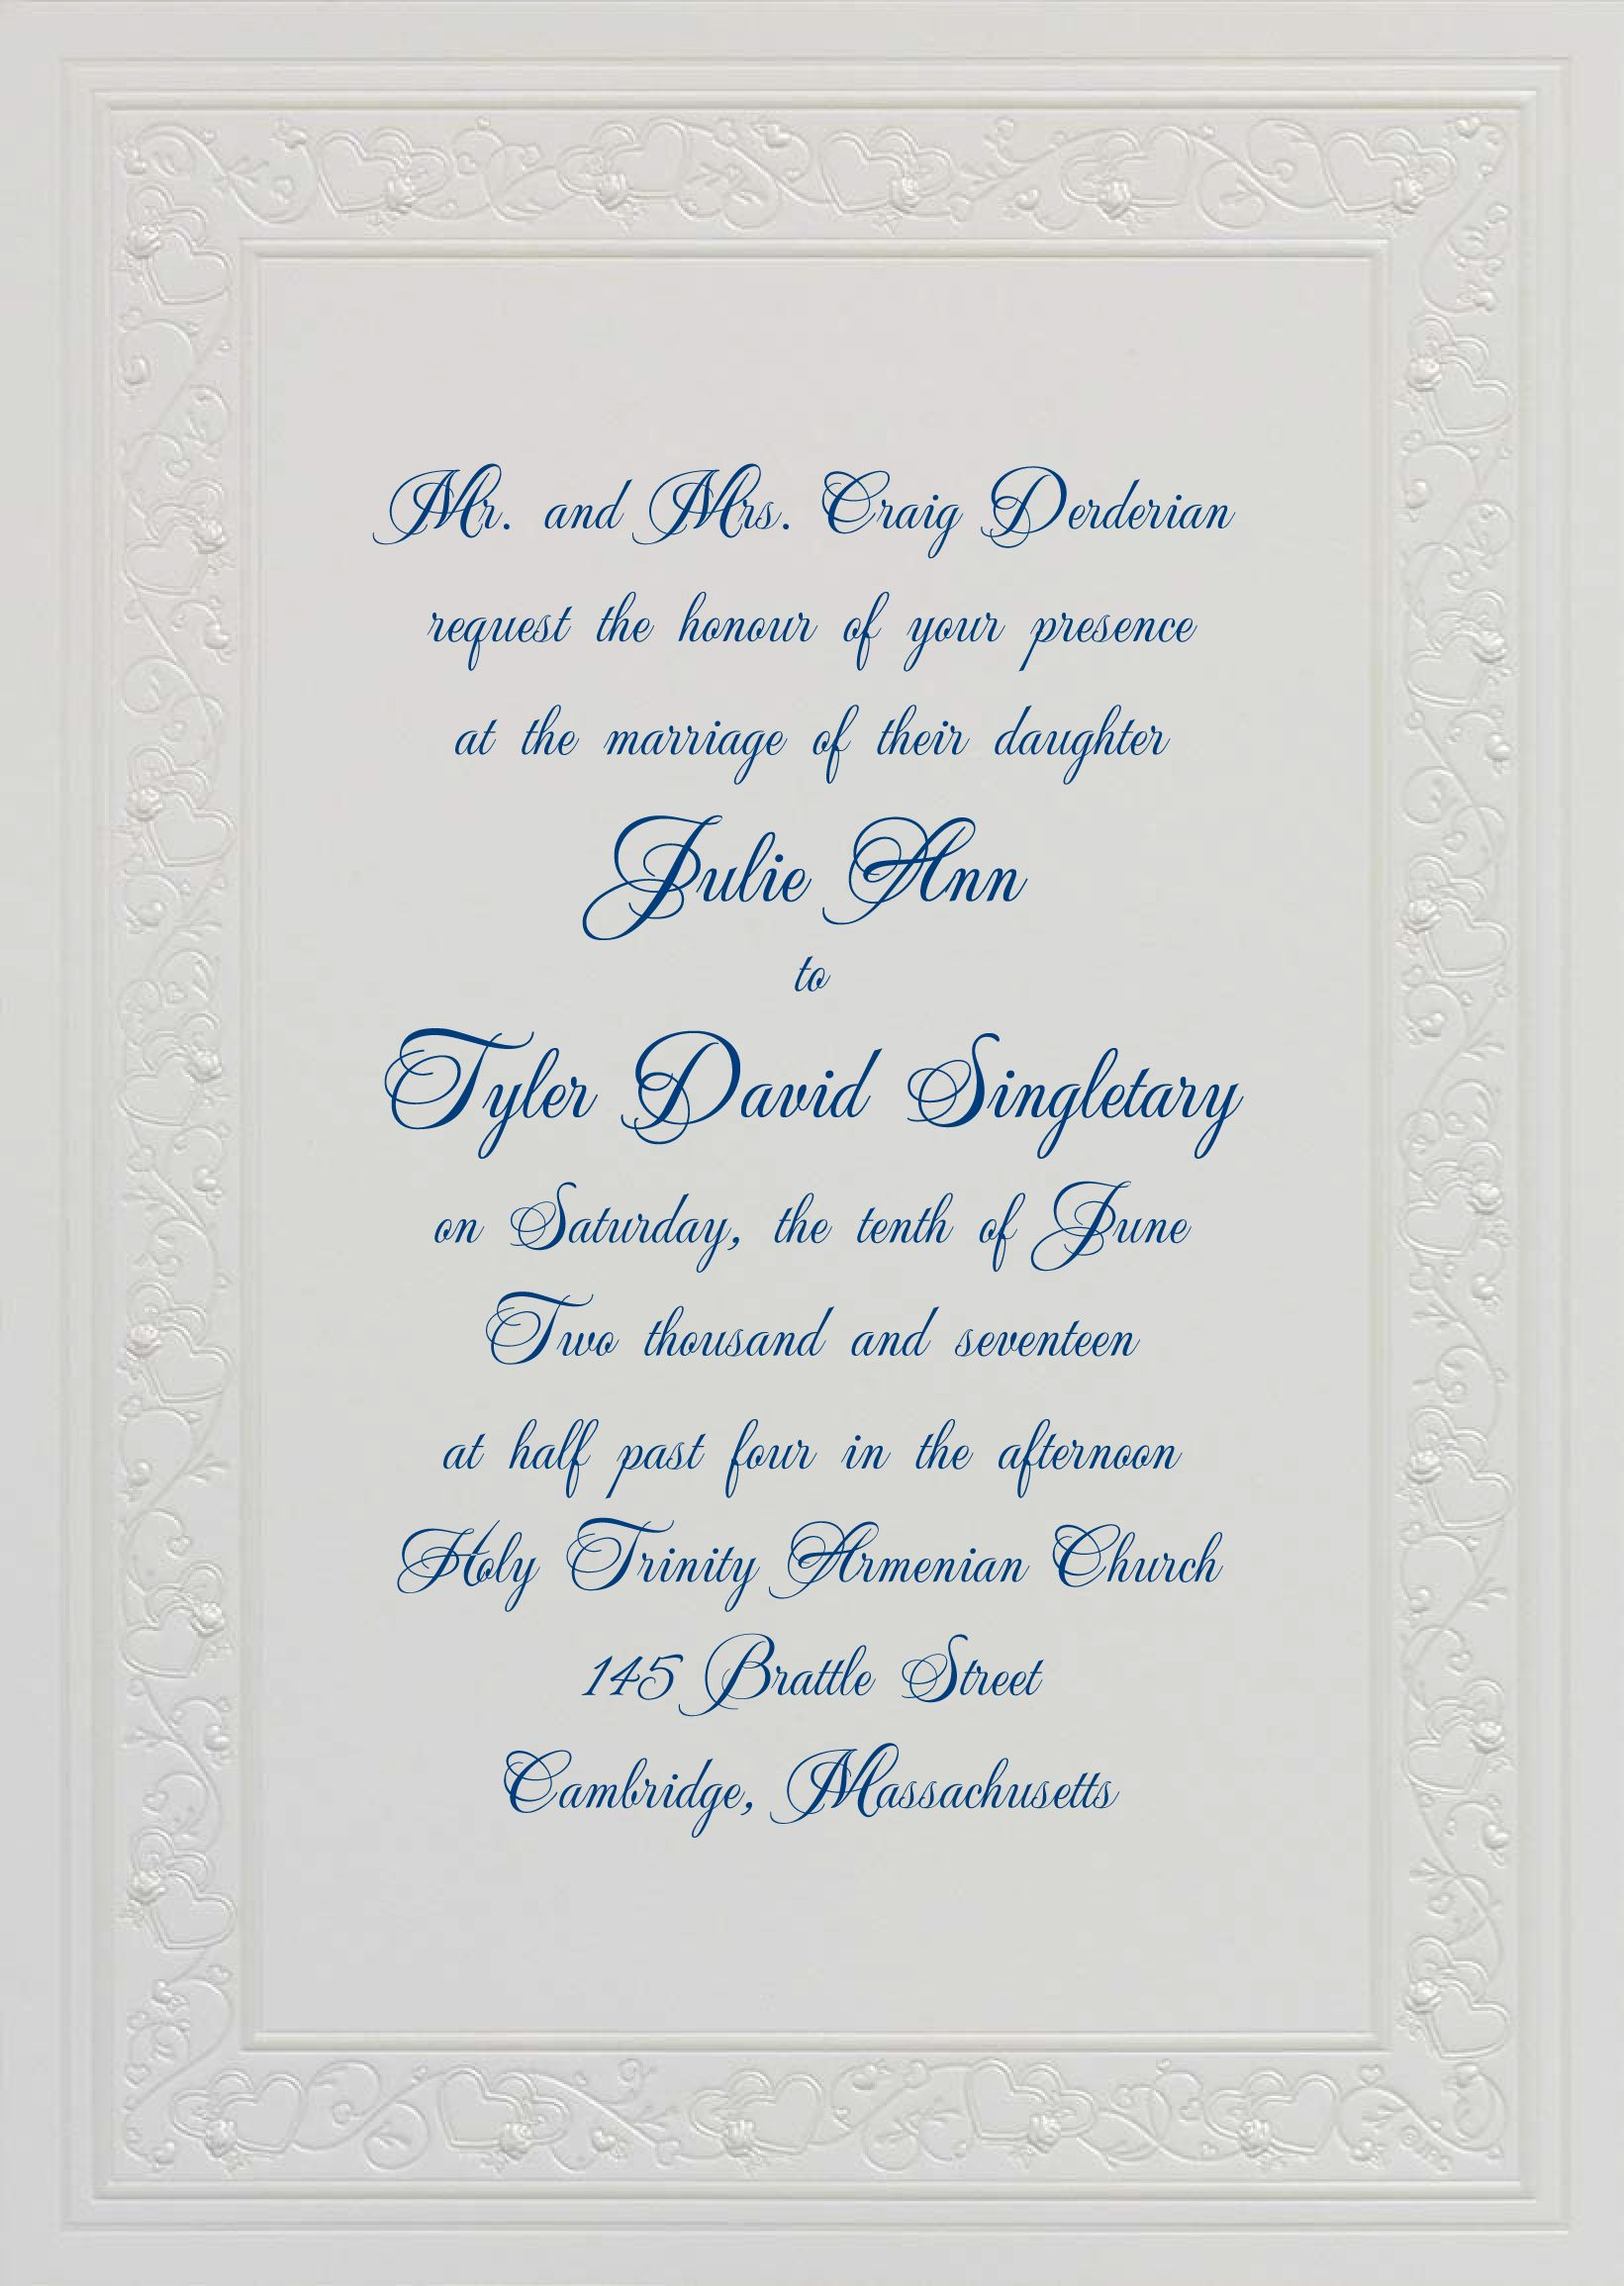 Beautiful Embossed Paper For Wedding Invitations Images 50pcs Pack